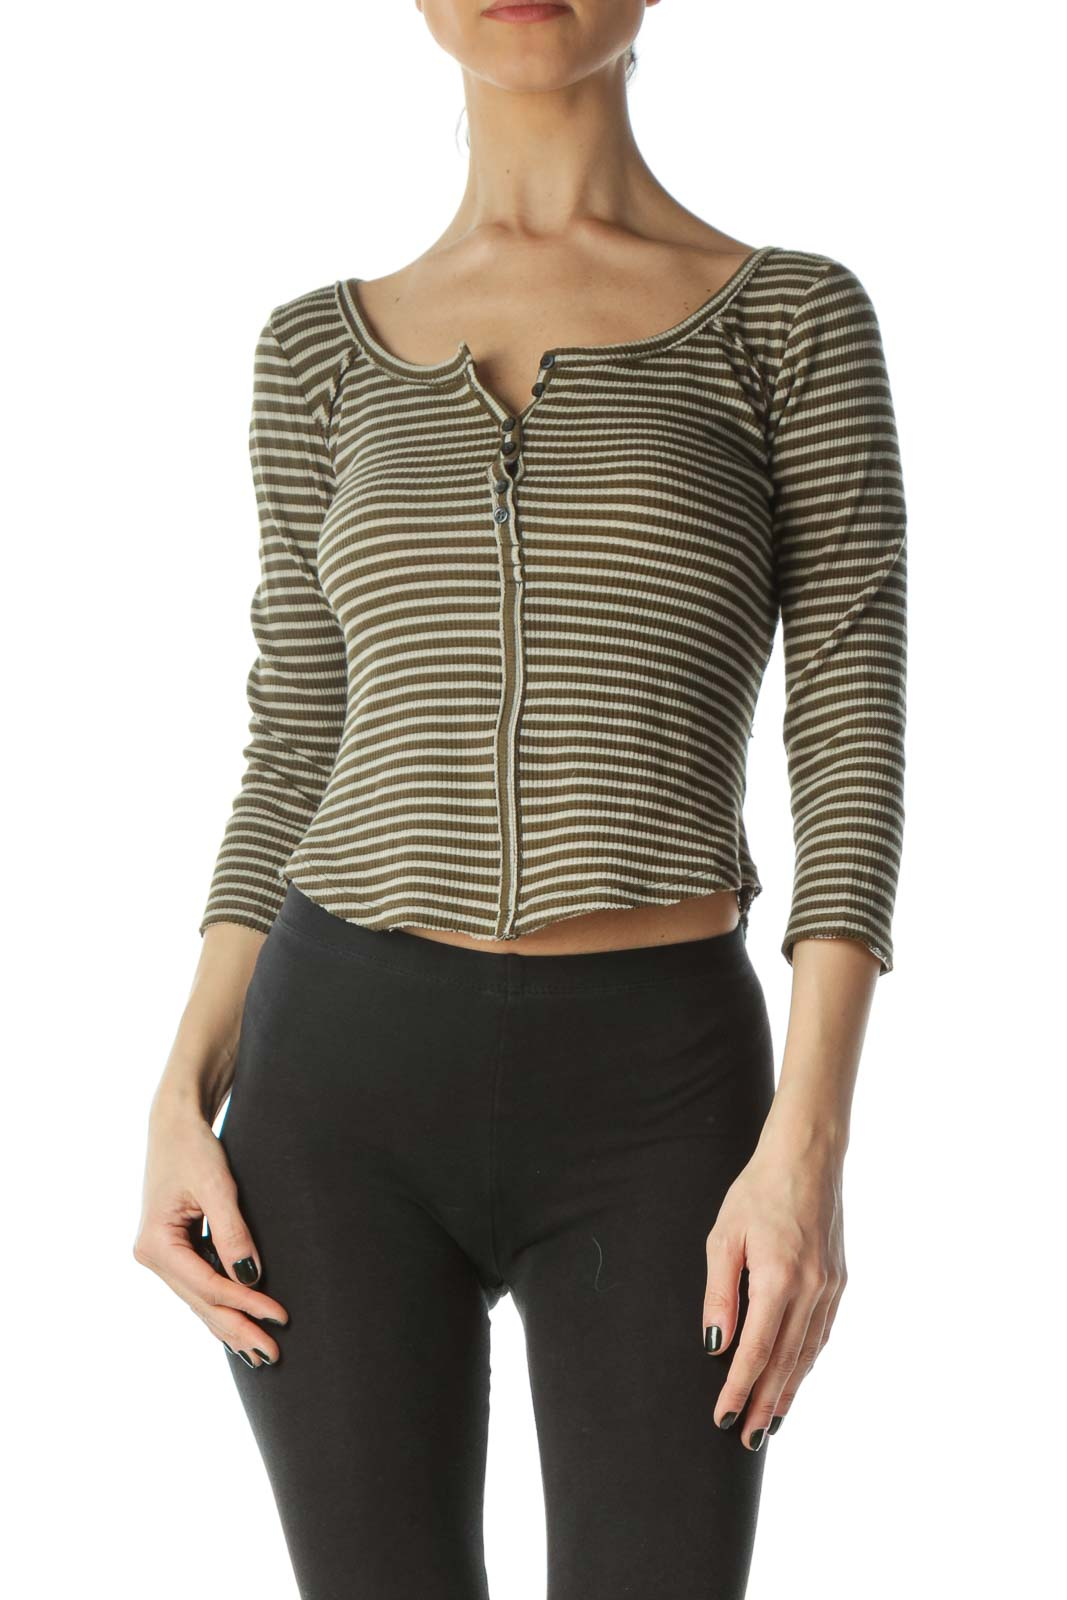 Green Striped Cropped 3/4 Sleeve Knit Top